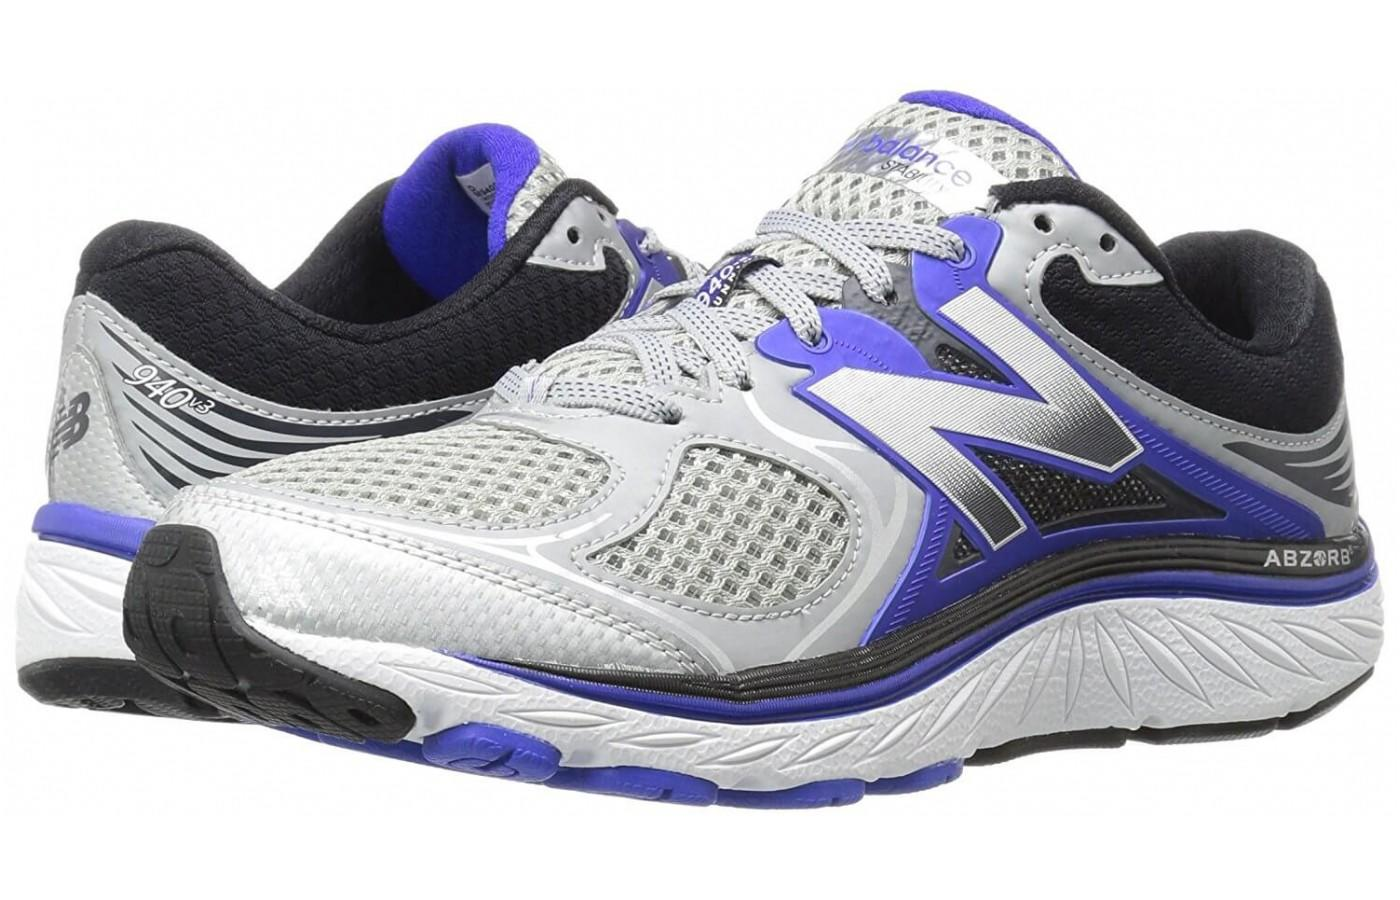 The New Balance 940V3 is said to be one of the most comfortable running shoe on the market.